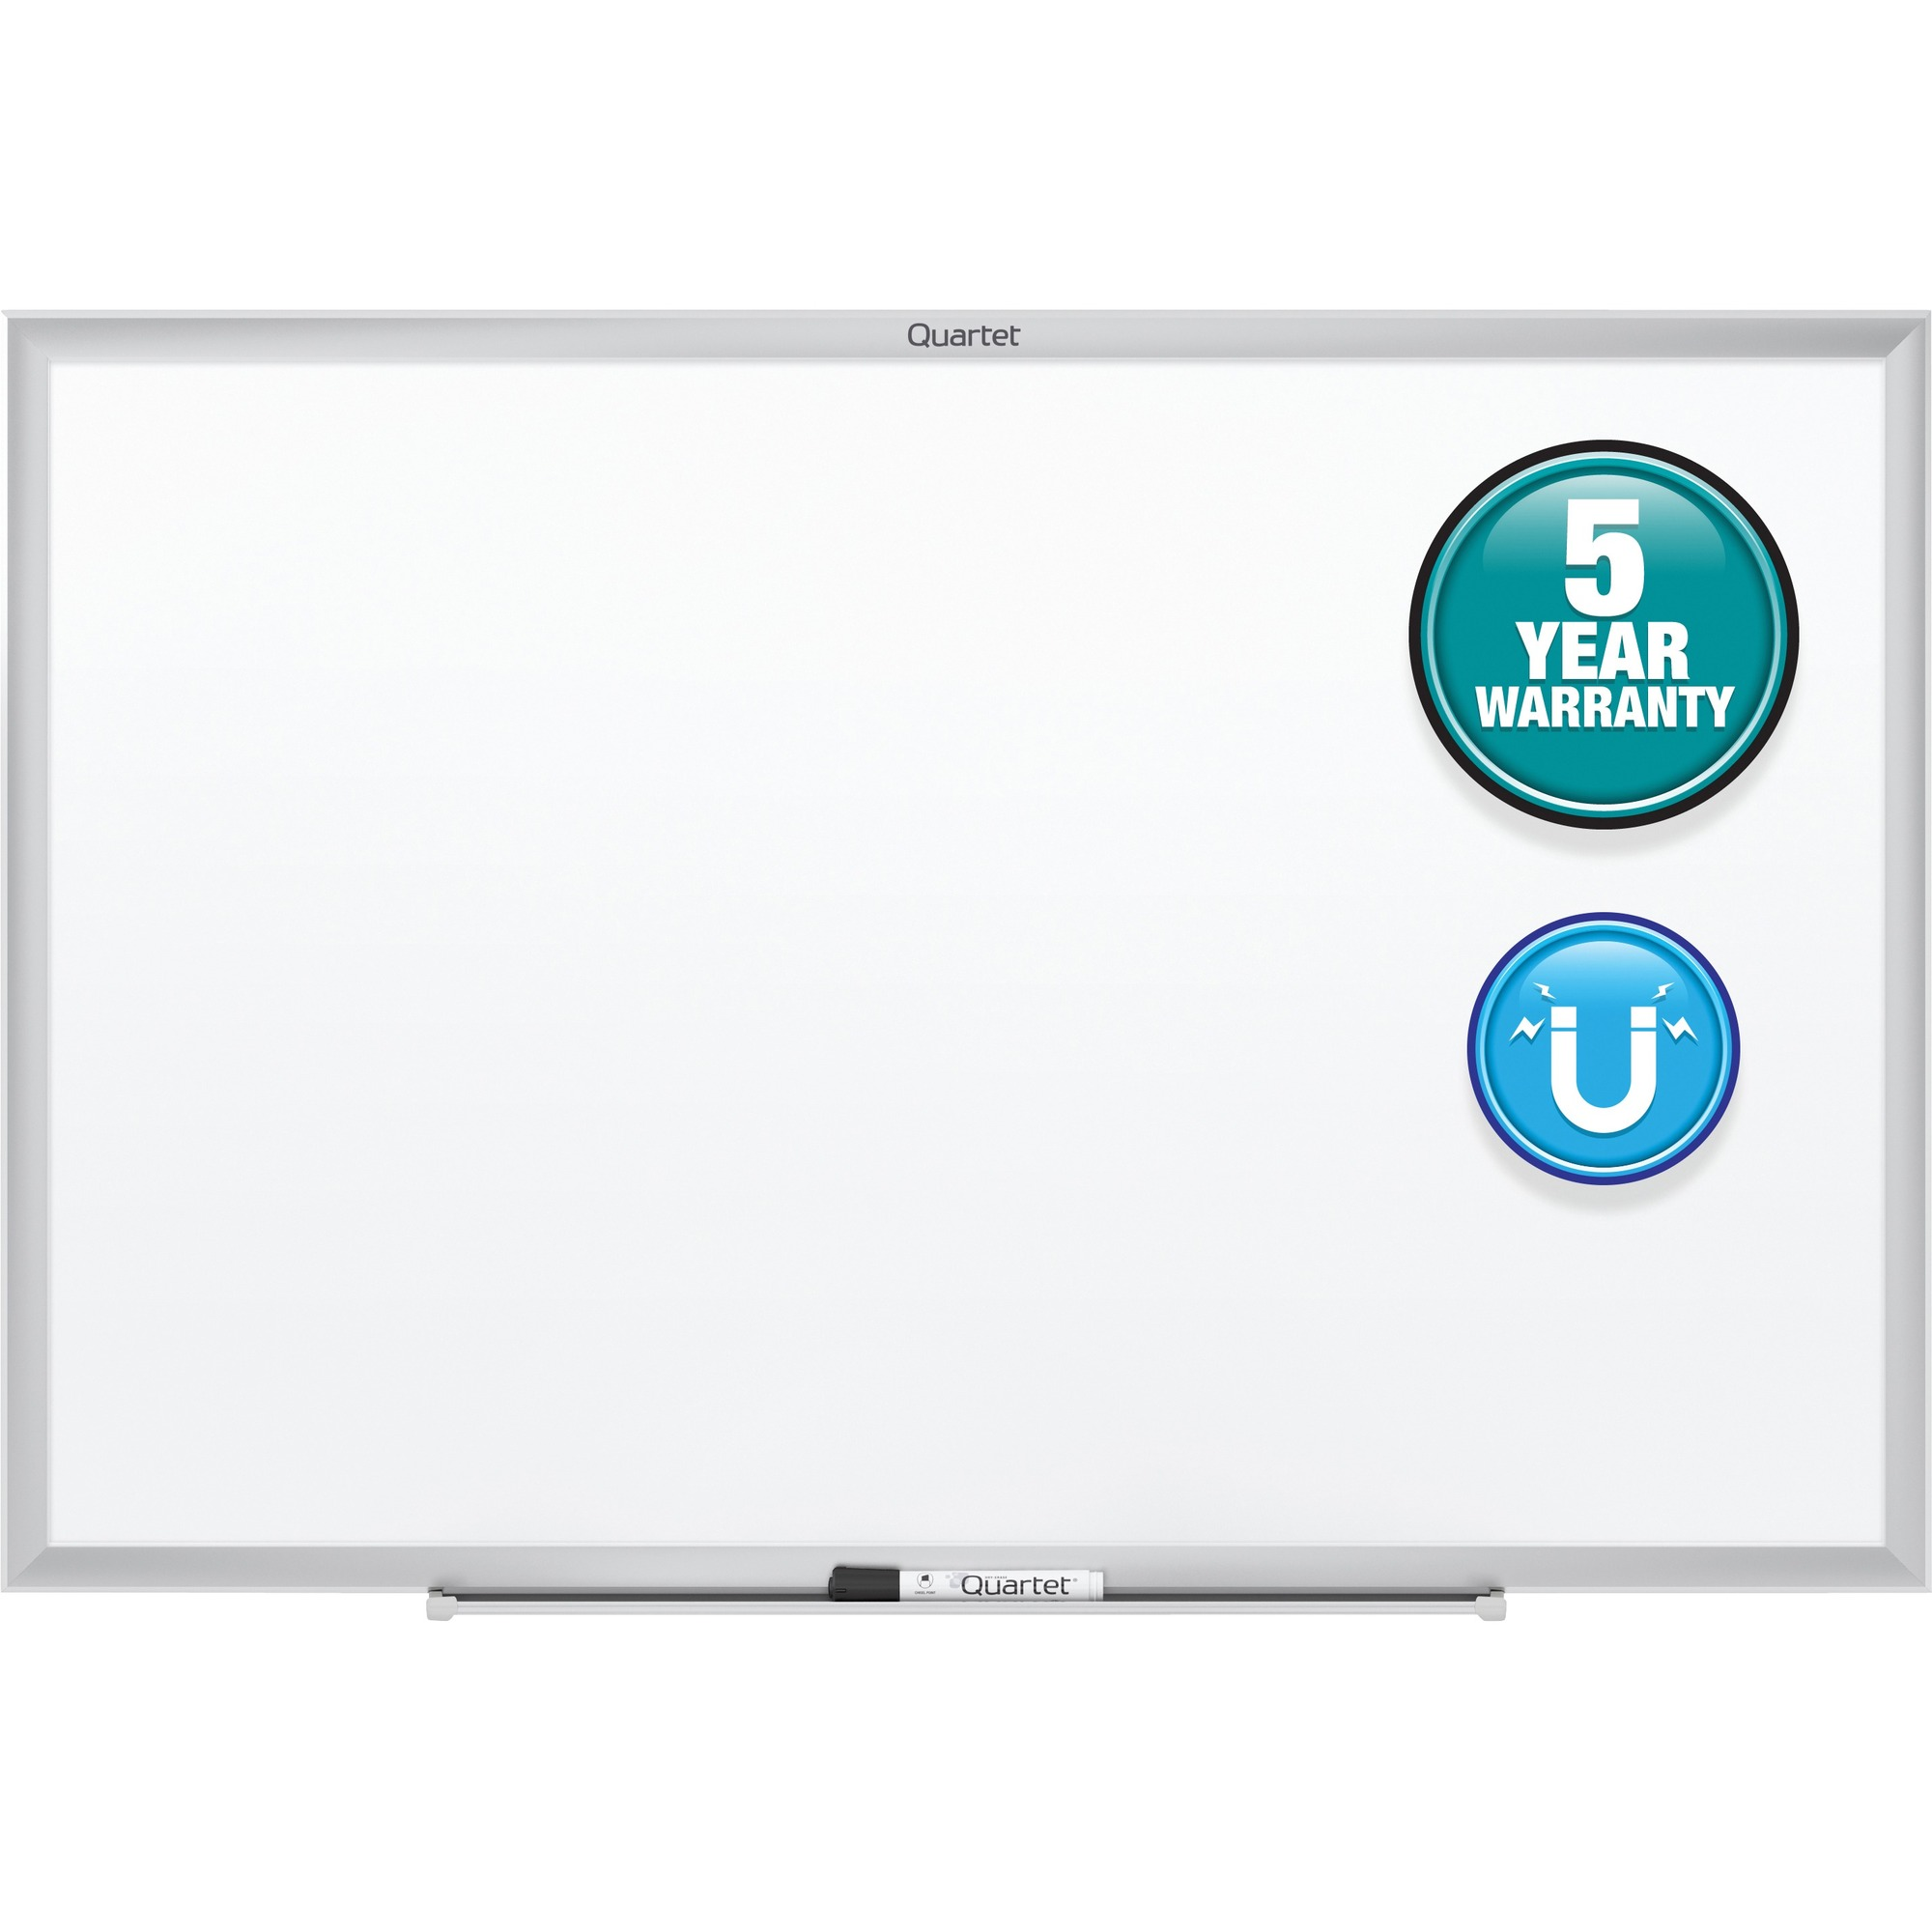 Acco Brands Corporation Quartet® Classic Magnetic Whiteboard - 96 (8 Ft) Width X 48 (4 Ft) Height - White Painted Steel Surface - Silver Aluminum Frame - Horizontal/vertical - 1 Each - Taa Compliant